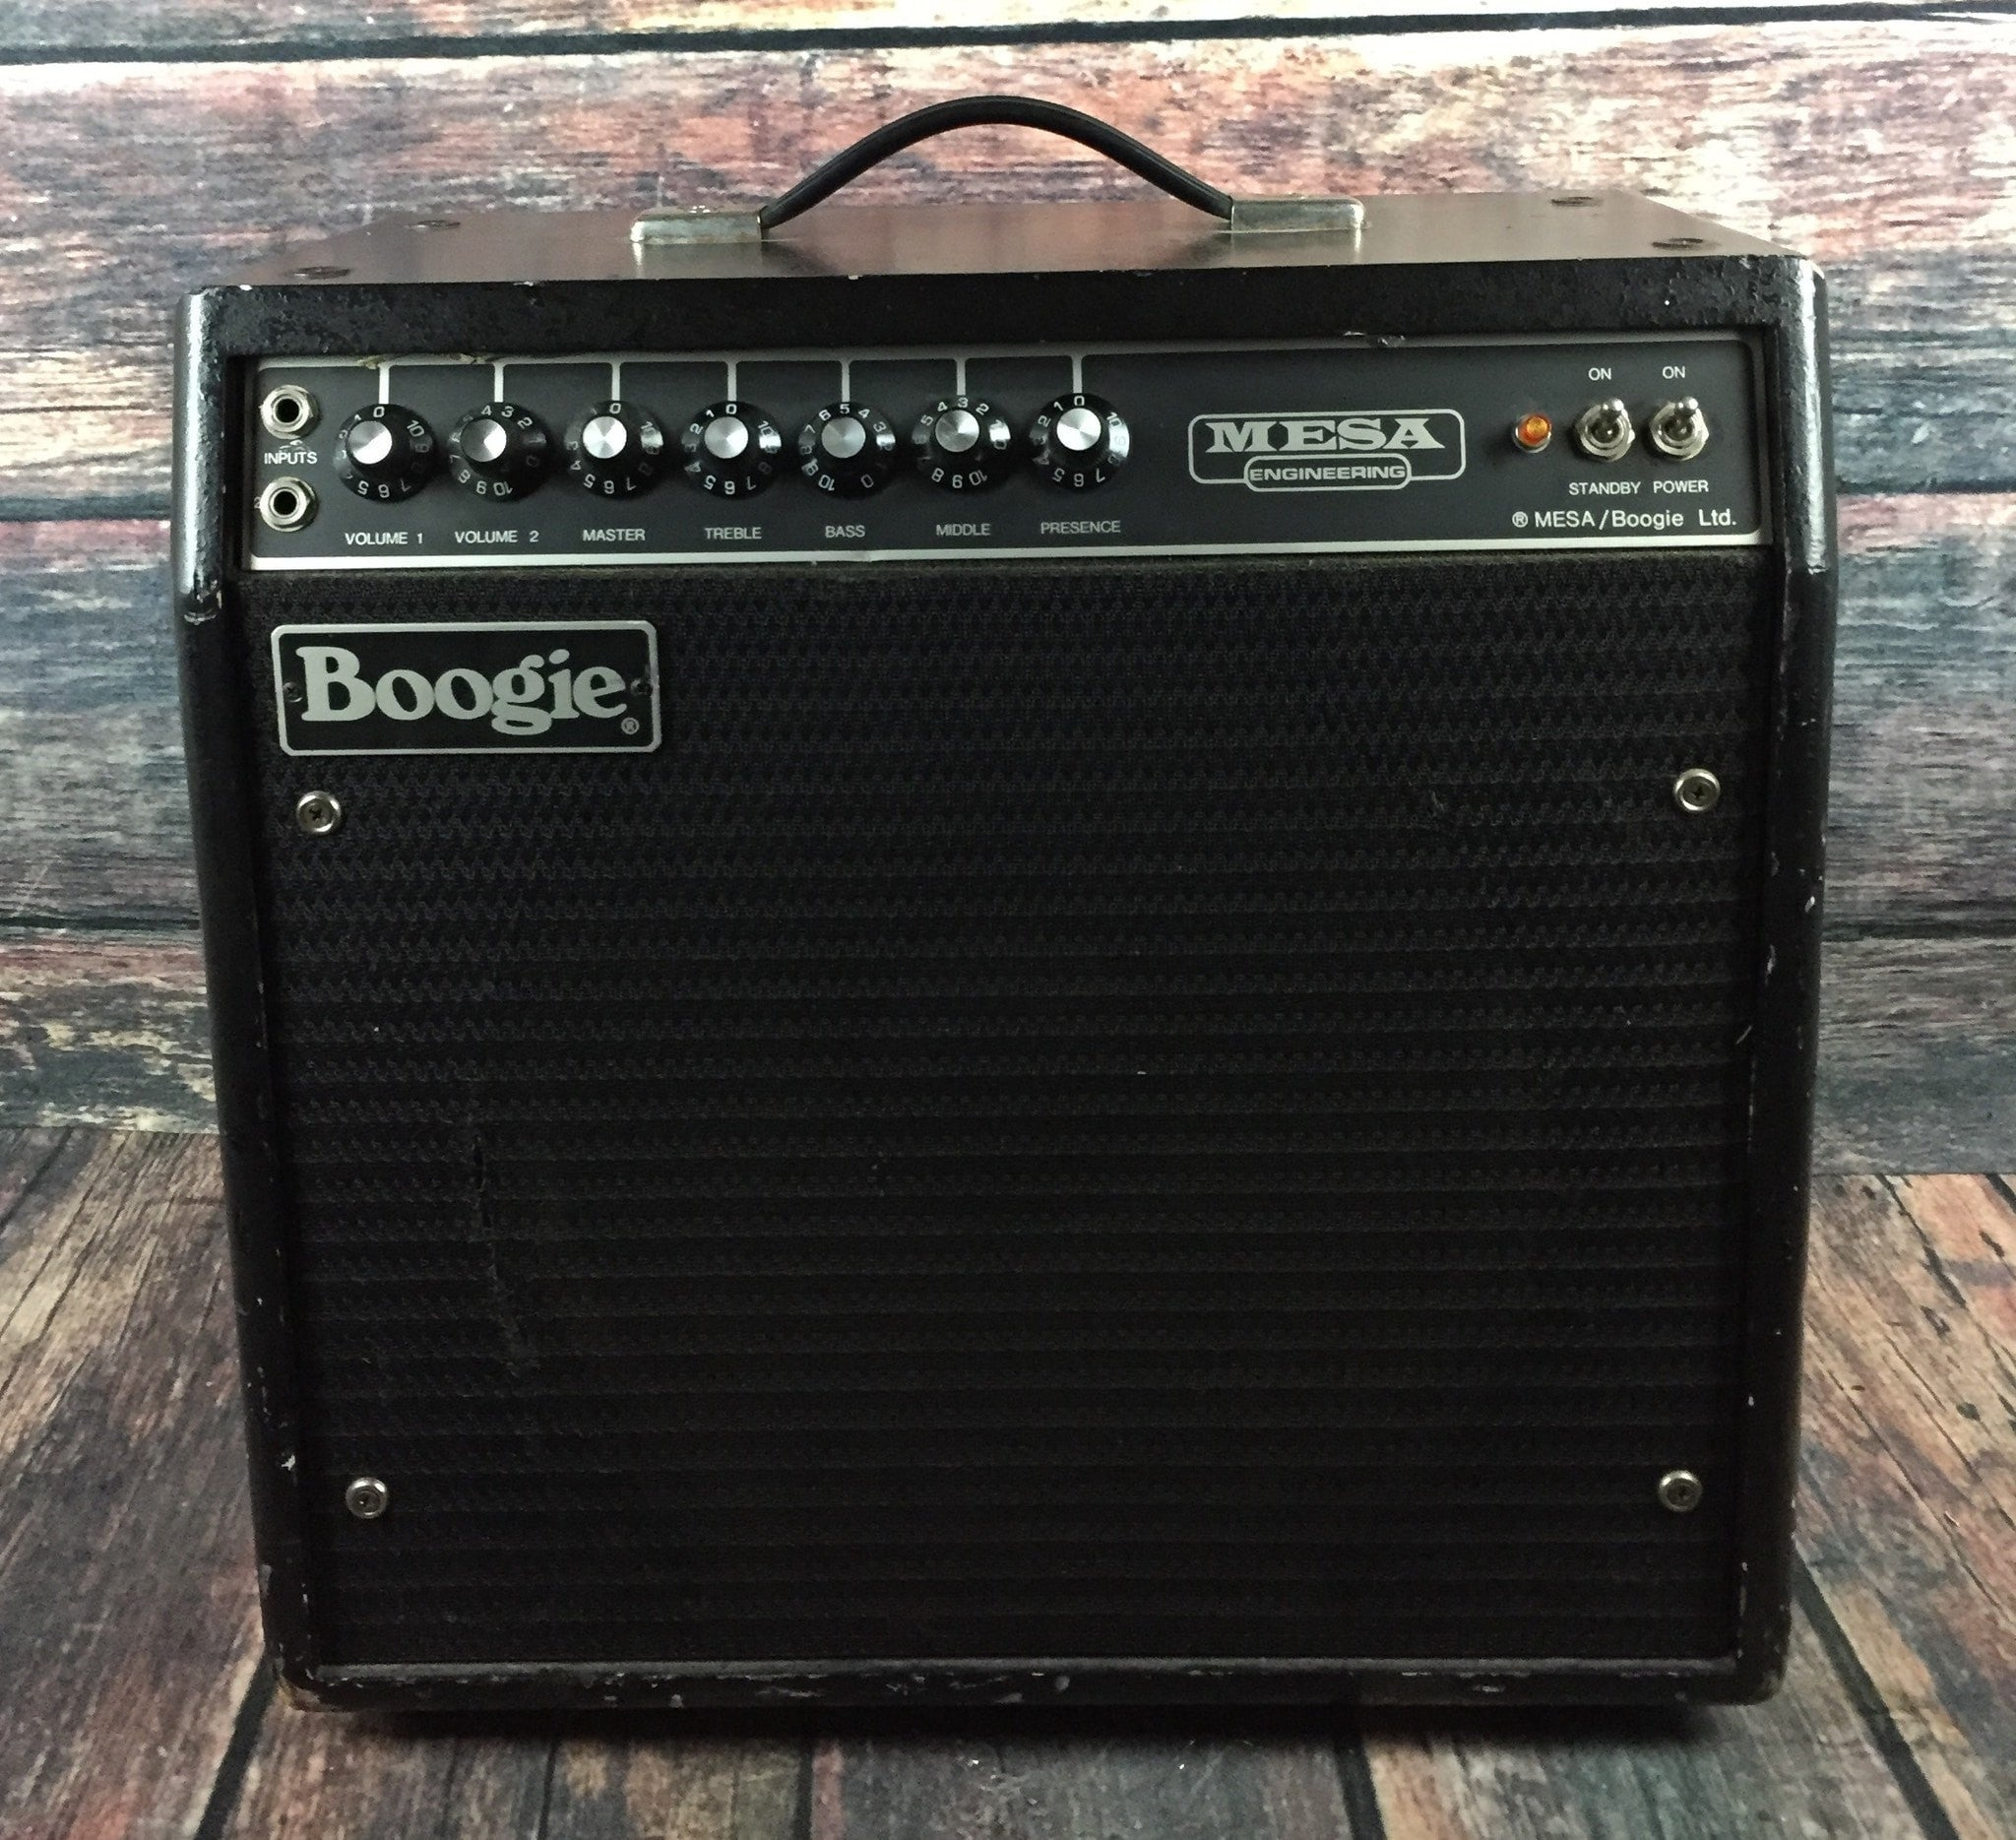 Dating mesa boogie amps